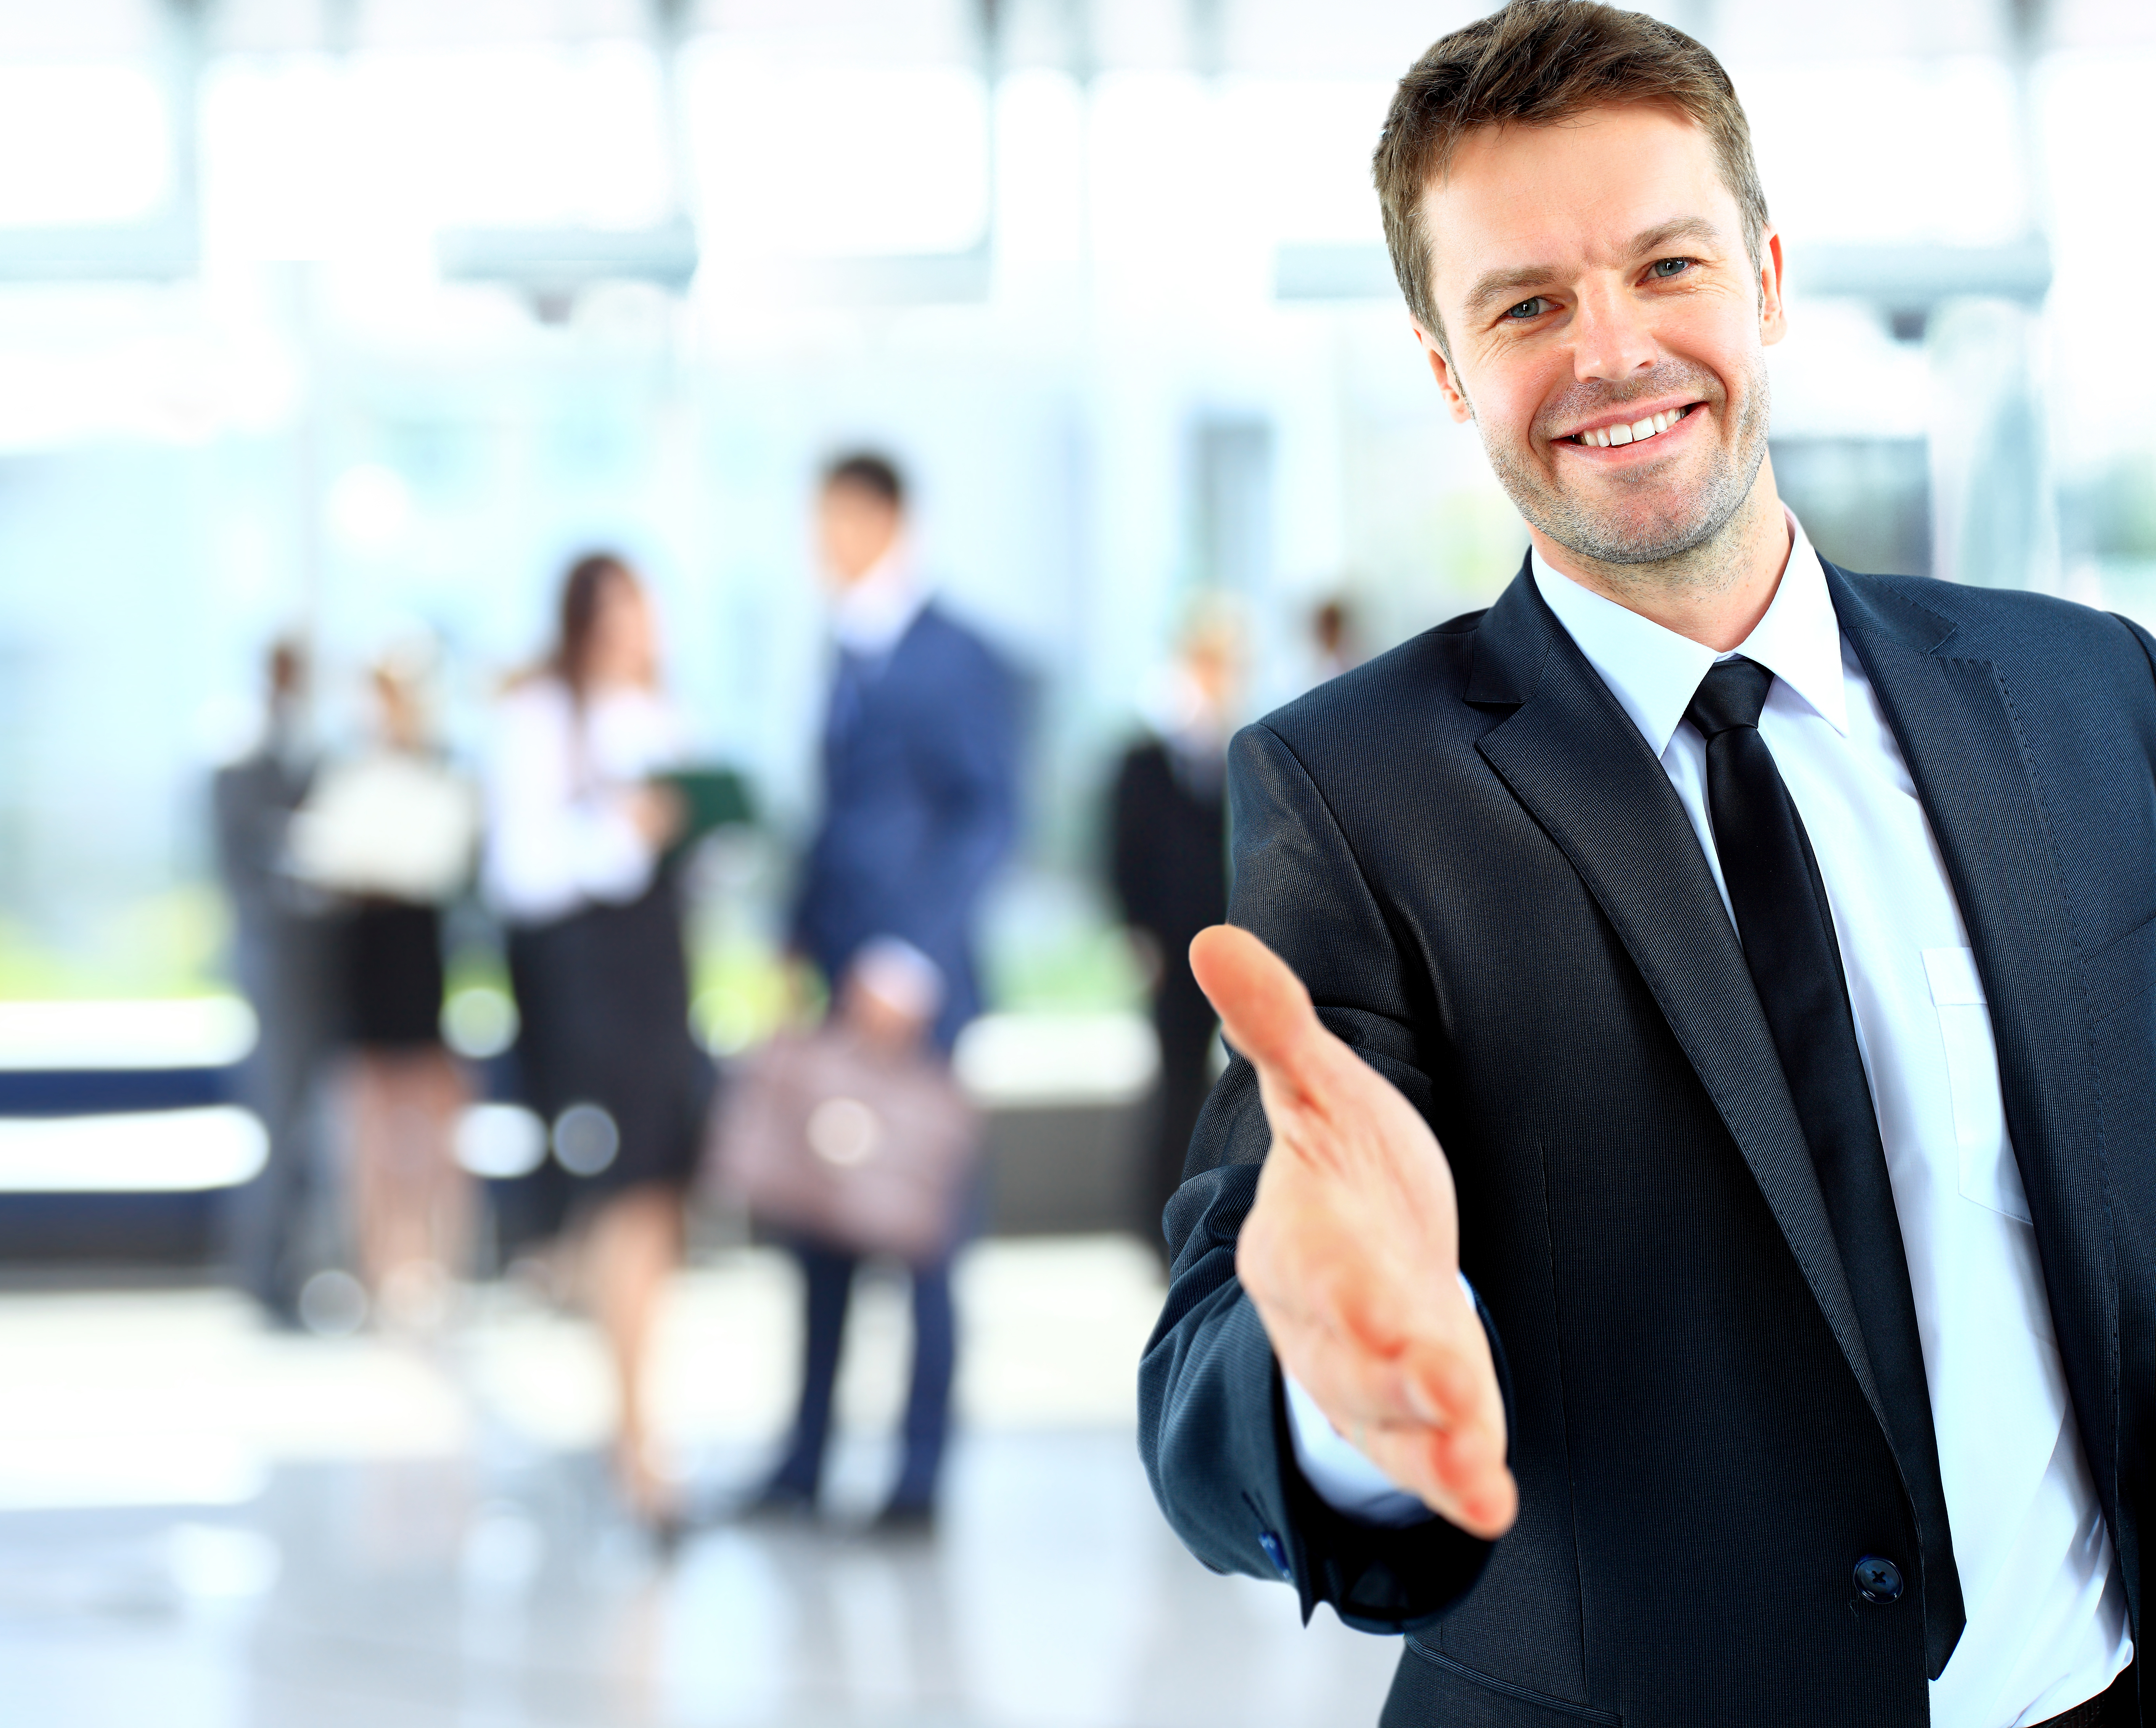 Handshake Stock Photos, Images, & Pictures - 49,213 Images